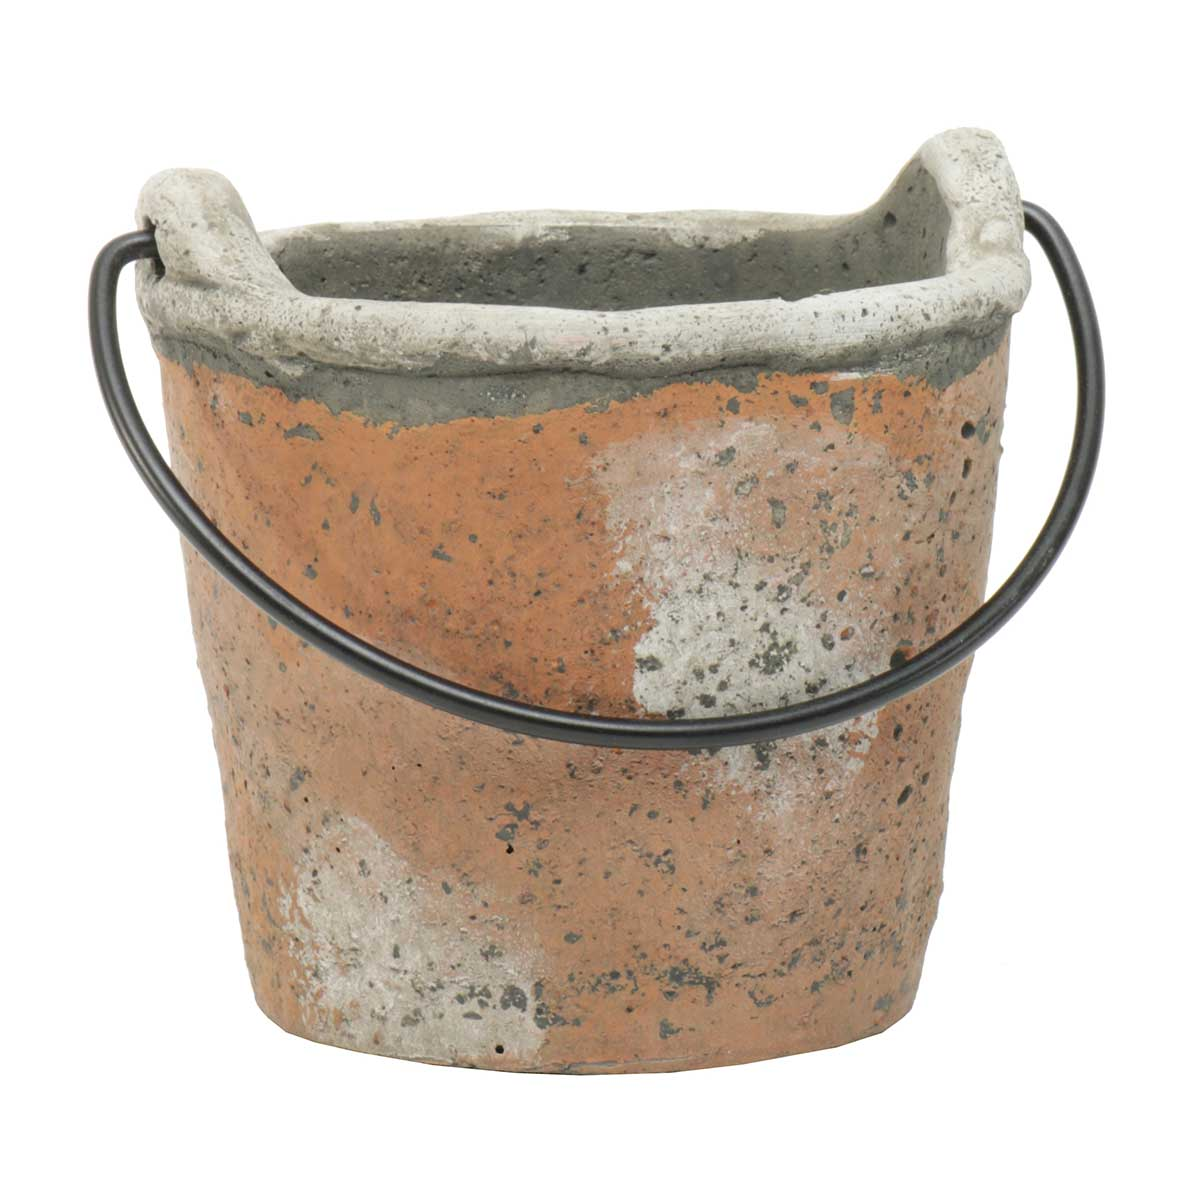 "PAIL WITH HANDLE 4.5""X5"" CONCRETE"